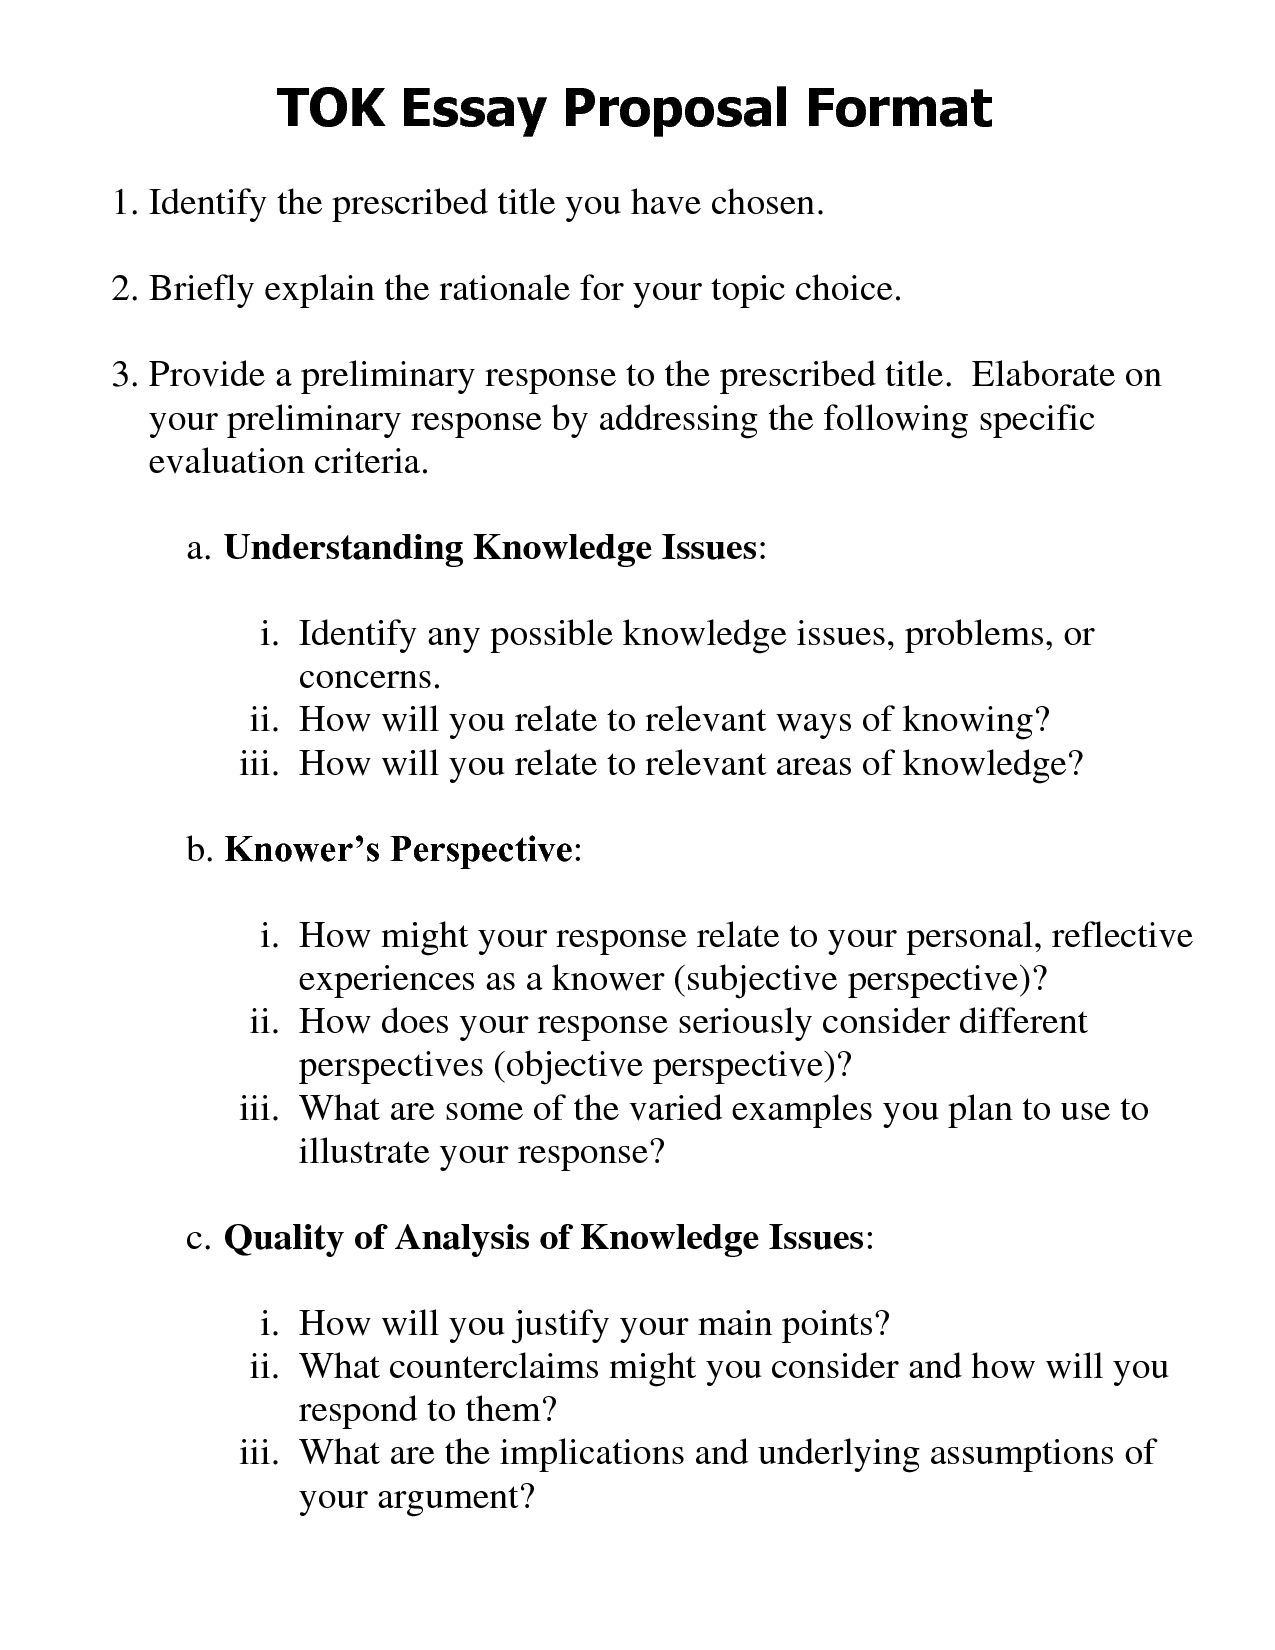 Proposal essay ideas proposal essay topic galerella ribbed for her